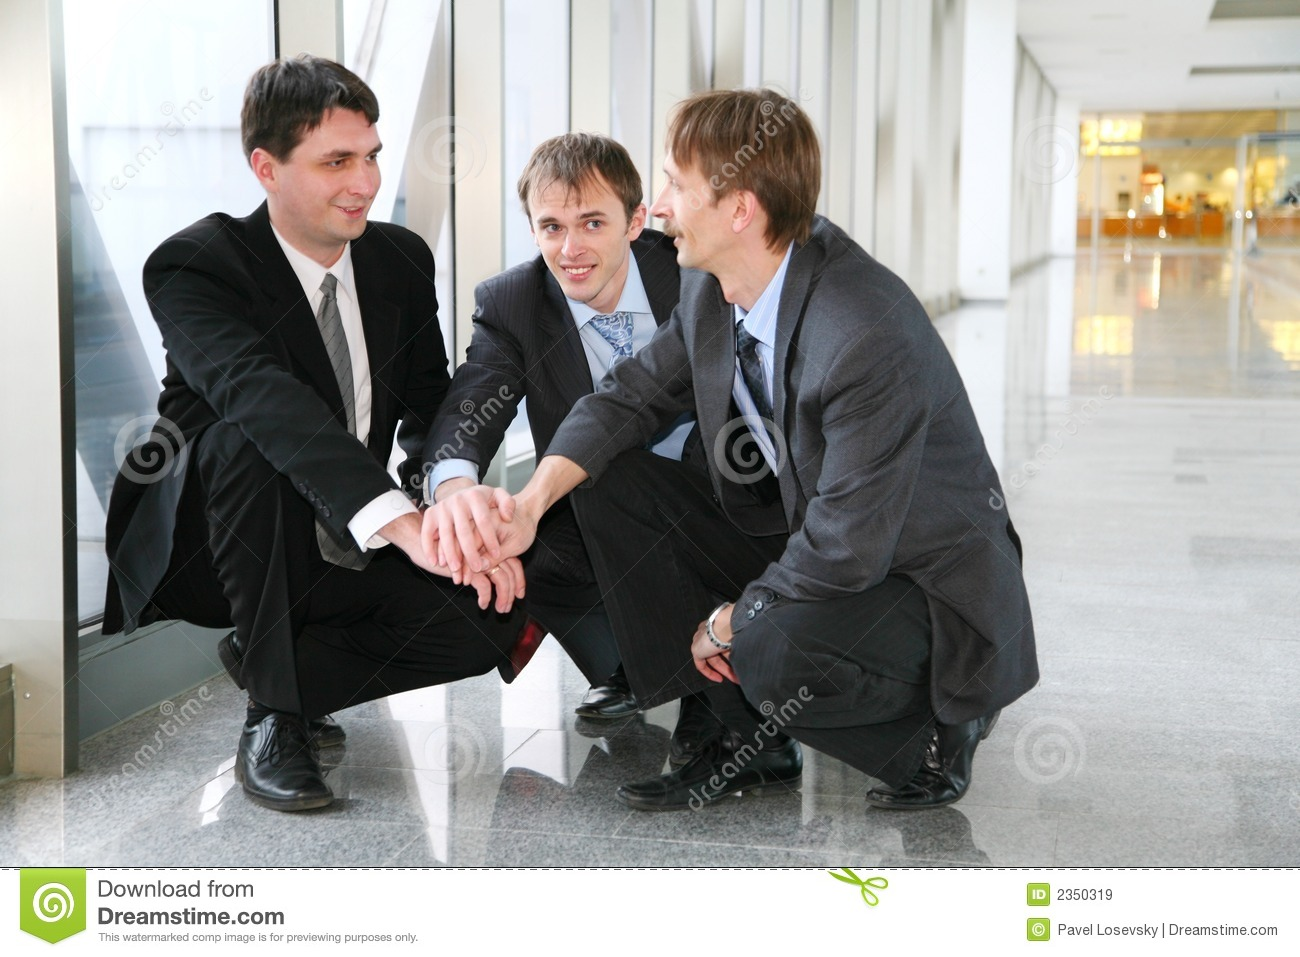 Businessteam enigma with hands